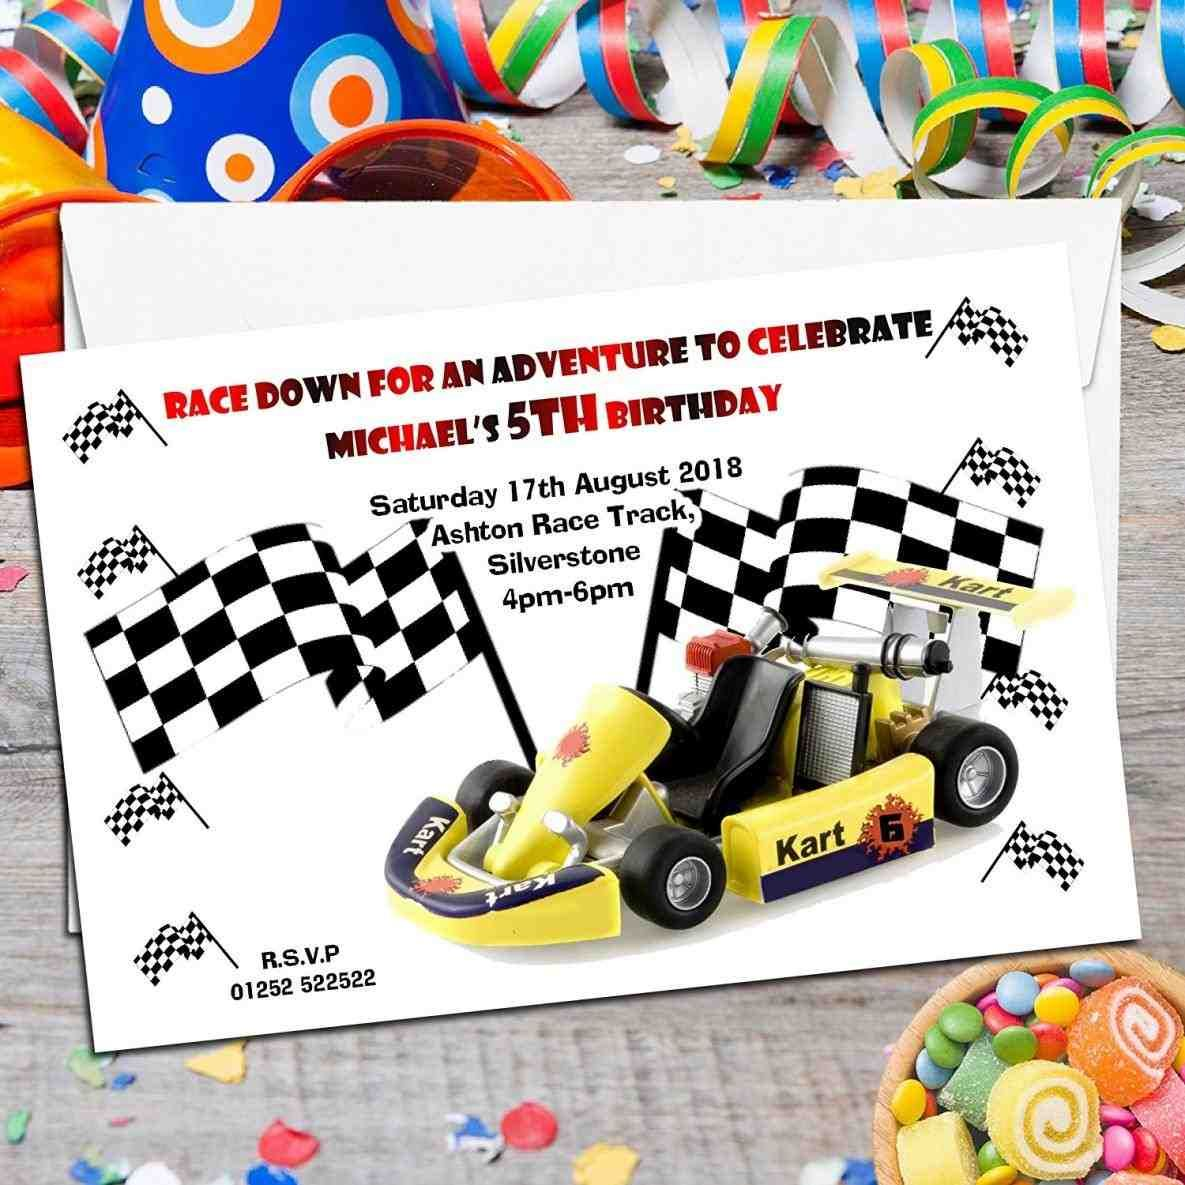 free printable invitations army, car racing swim party events ...